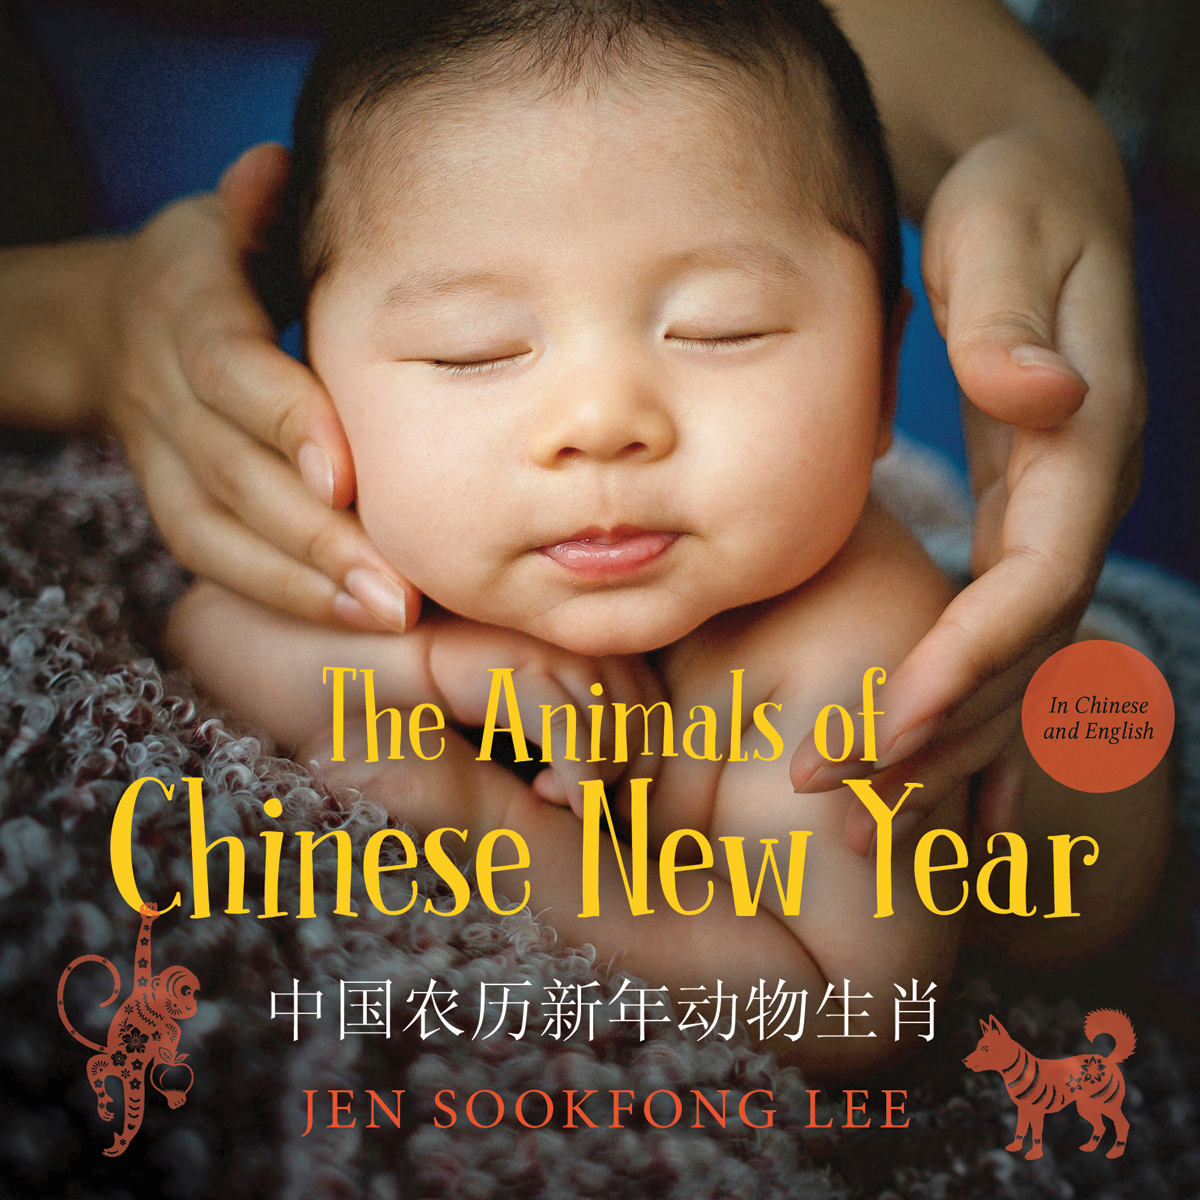 The Animals of Chinese New Year